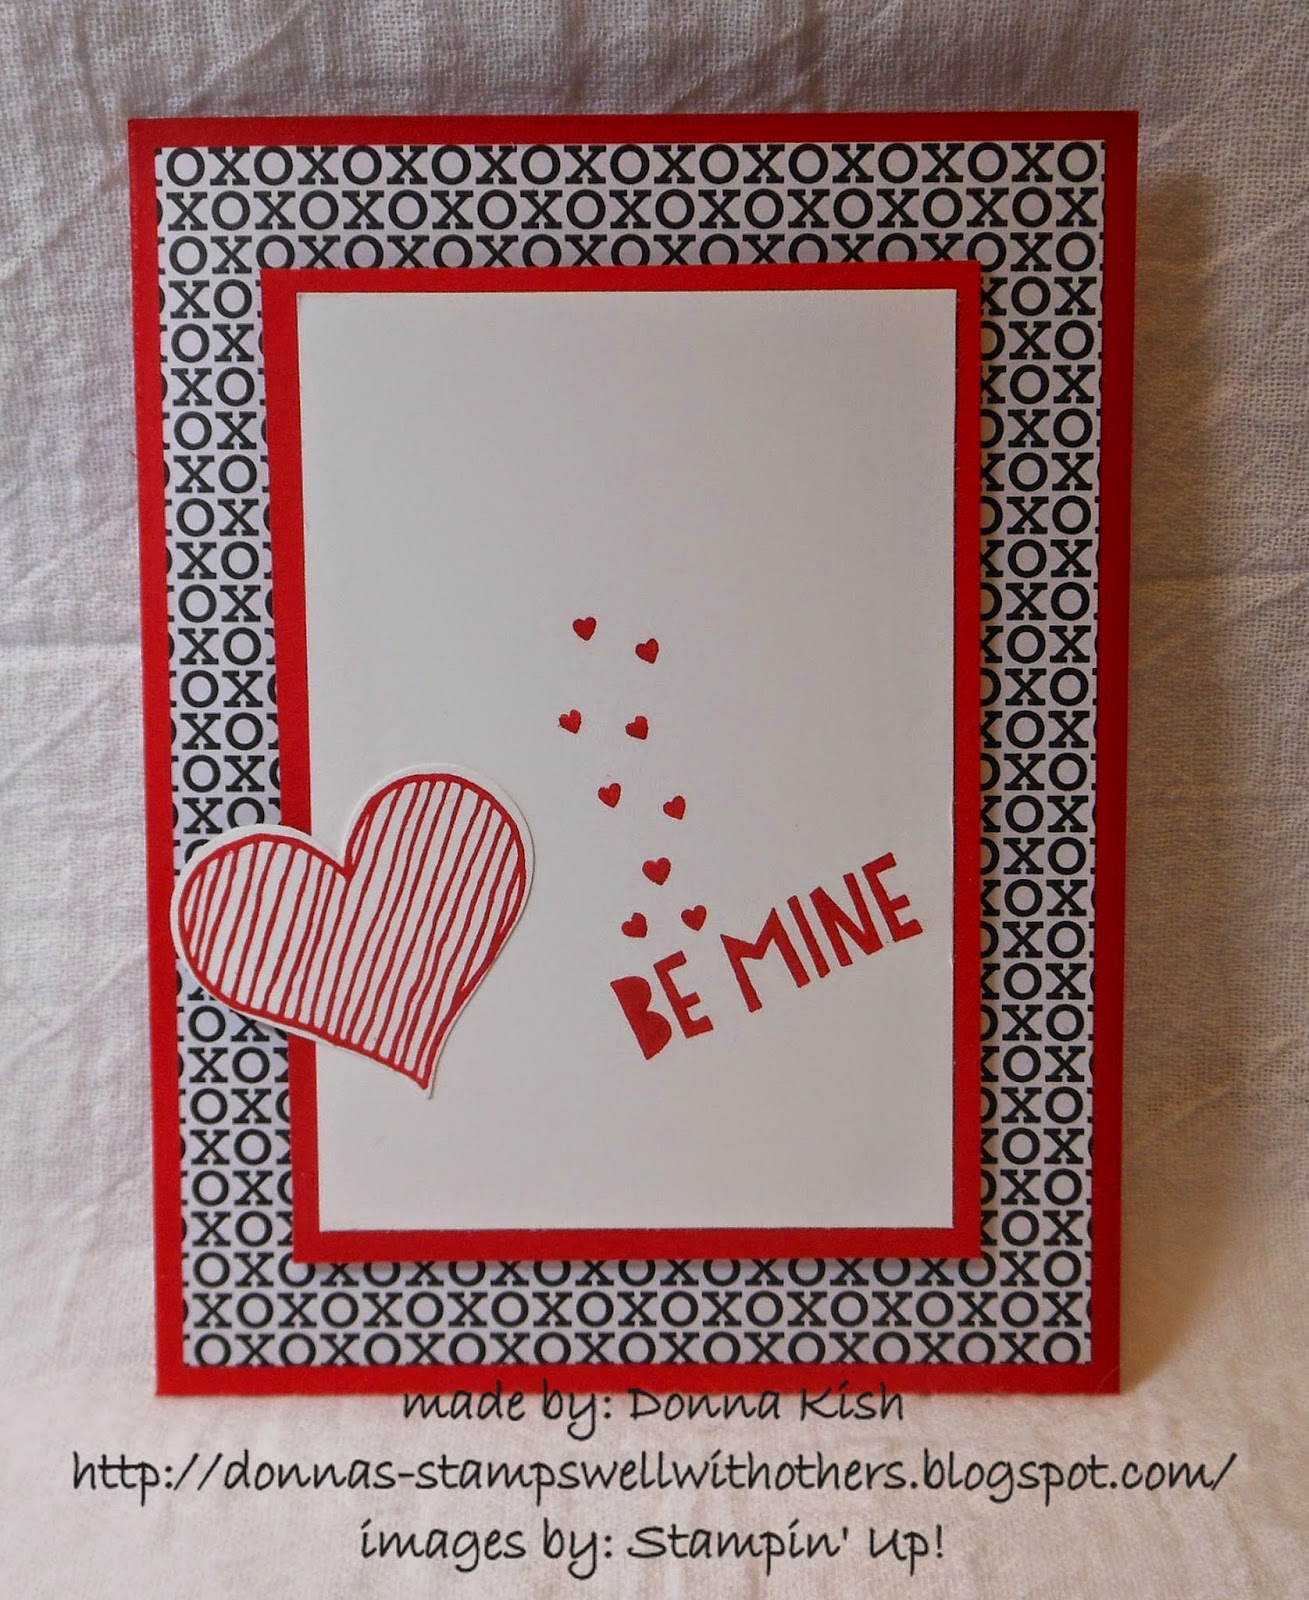 http://donnas-stampswellwithothers.blogspot.com/2015/01/be-mine-valentine.html